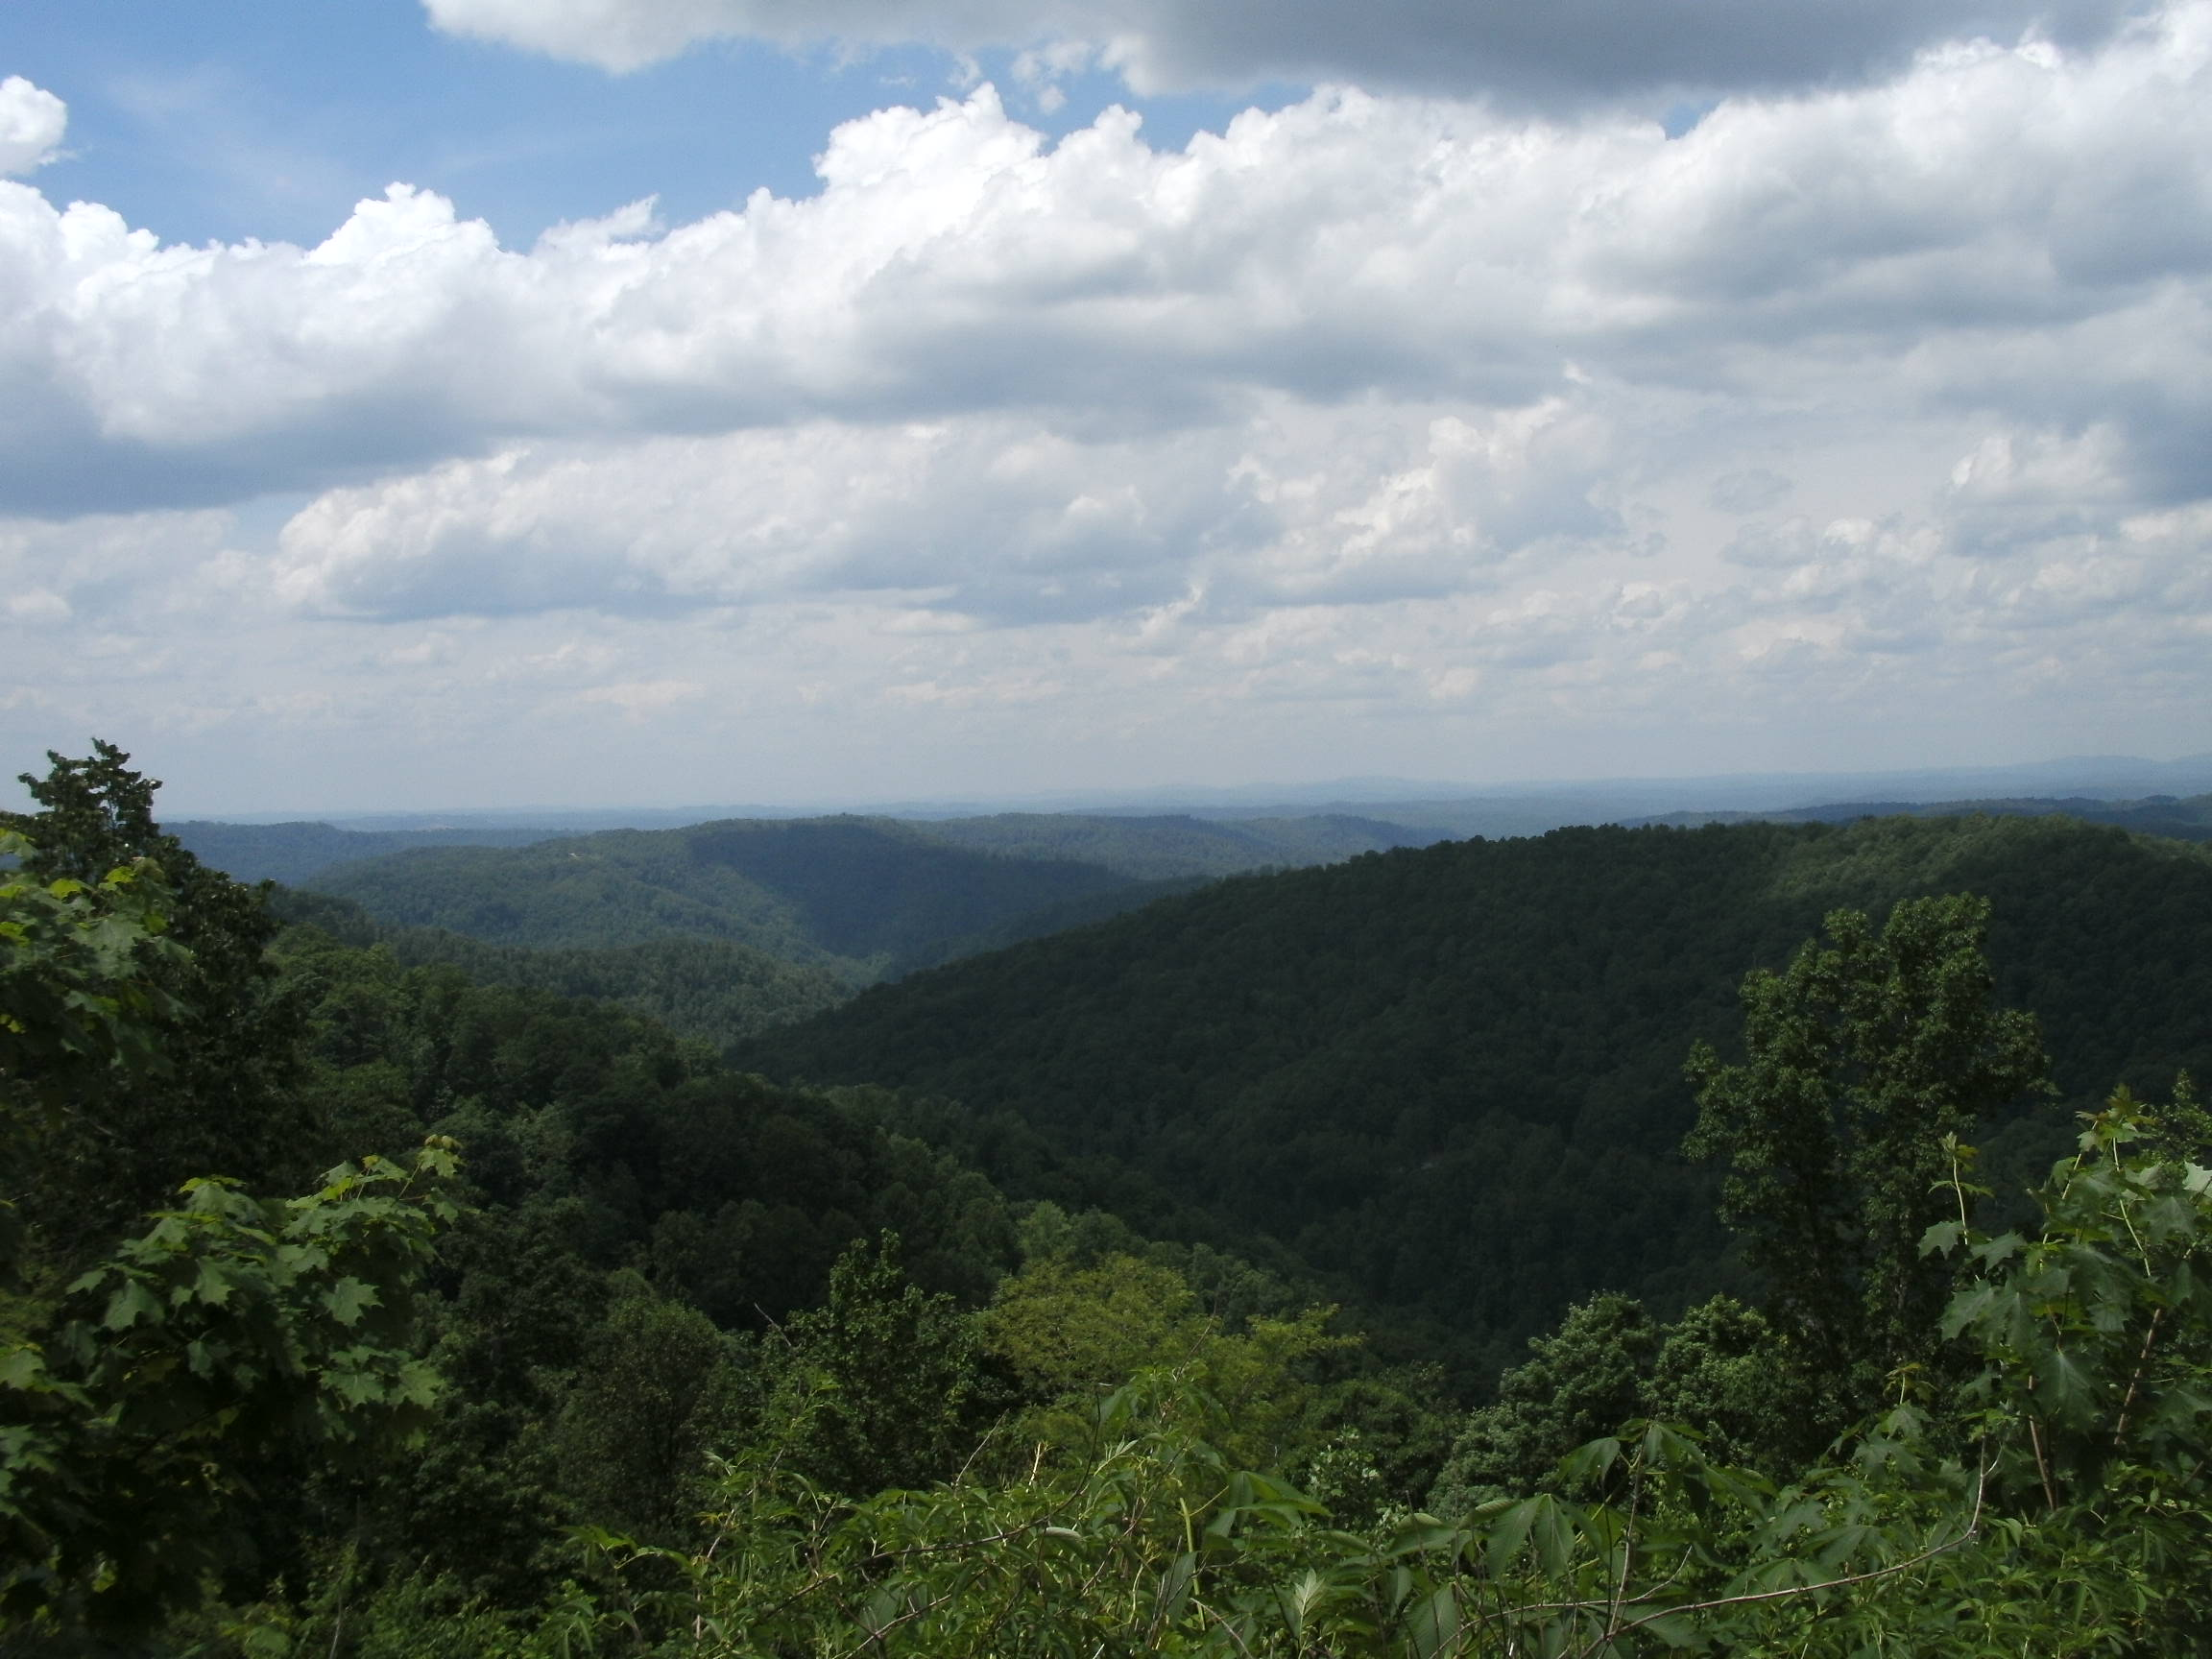 View from Flat Top Mountain looking toward Princeton.  (Photo by Steven Hart)